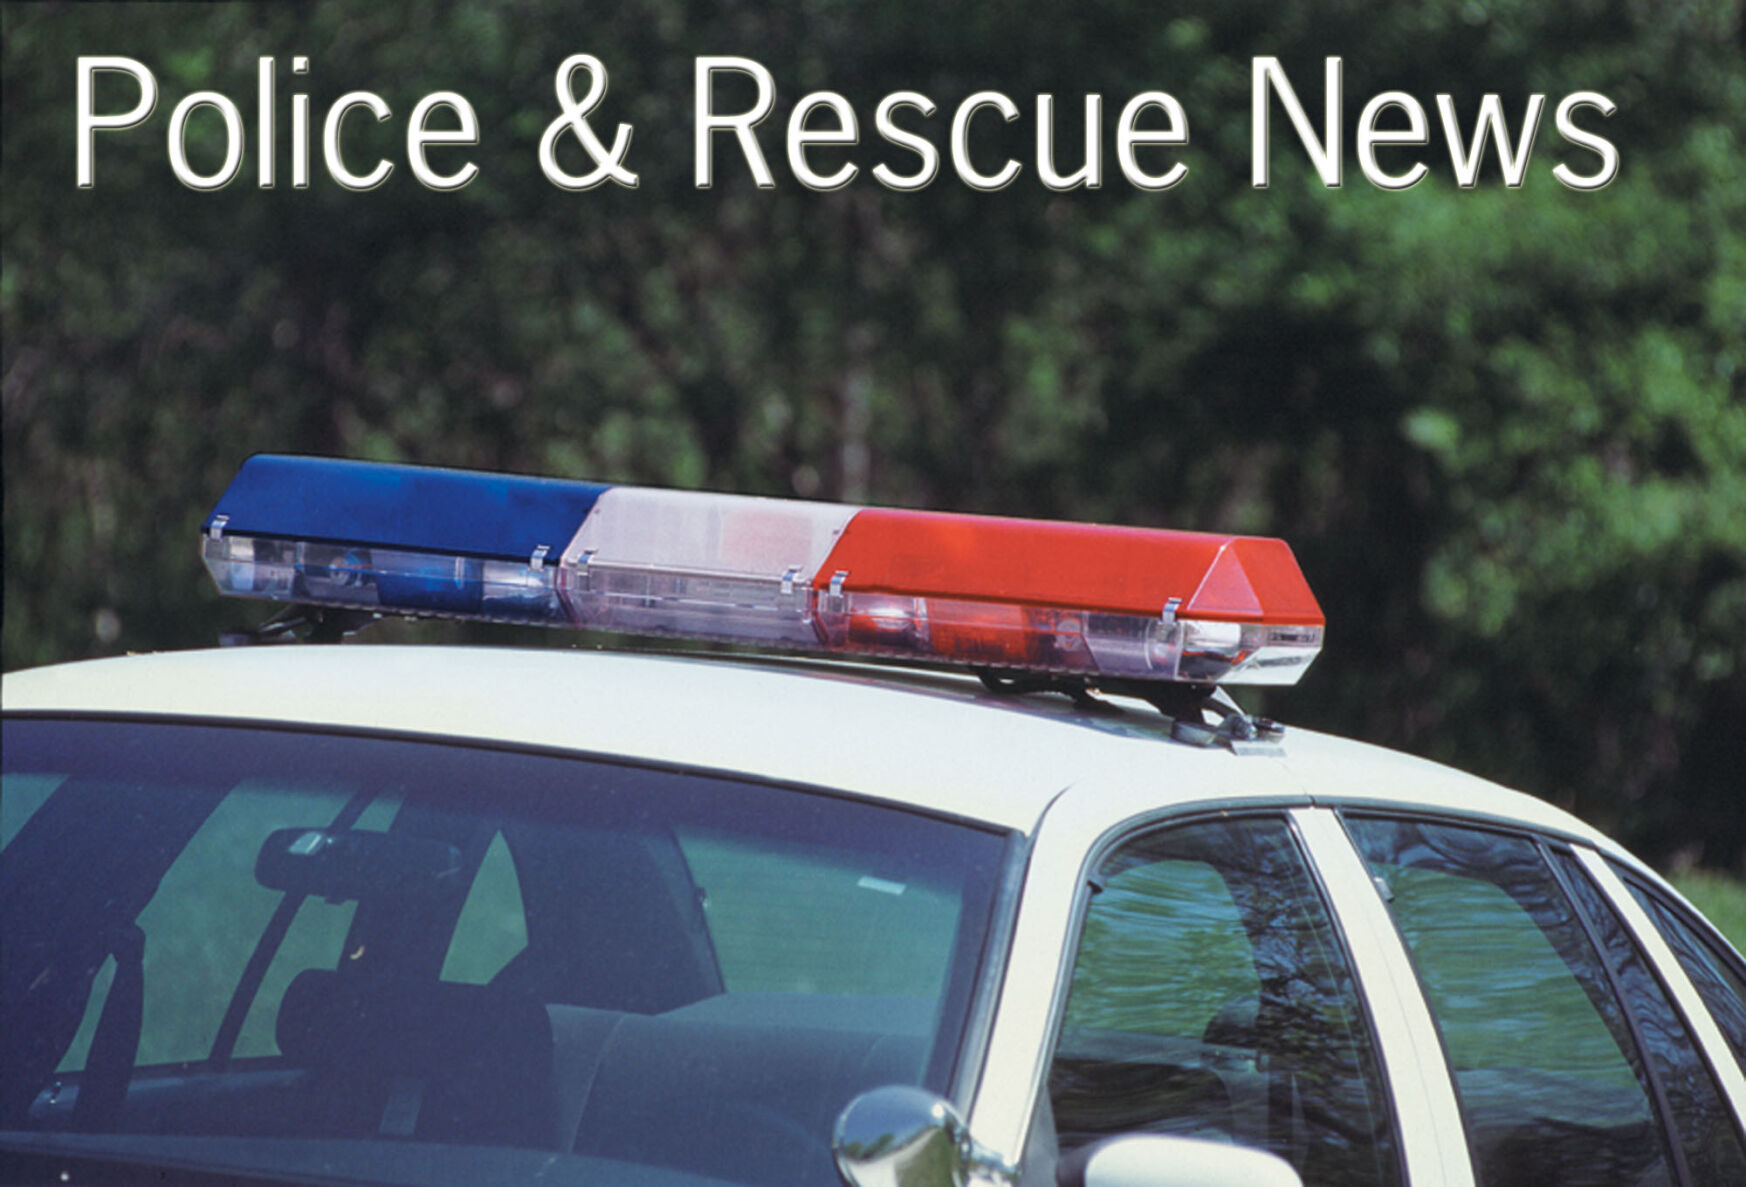 POLICE NEWS: Woman robbed in Goshen